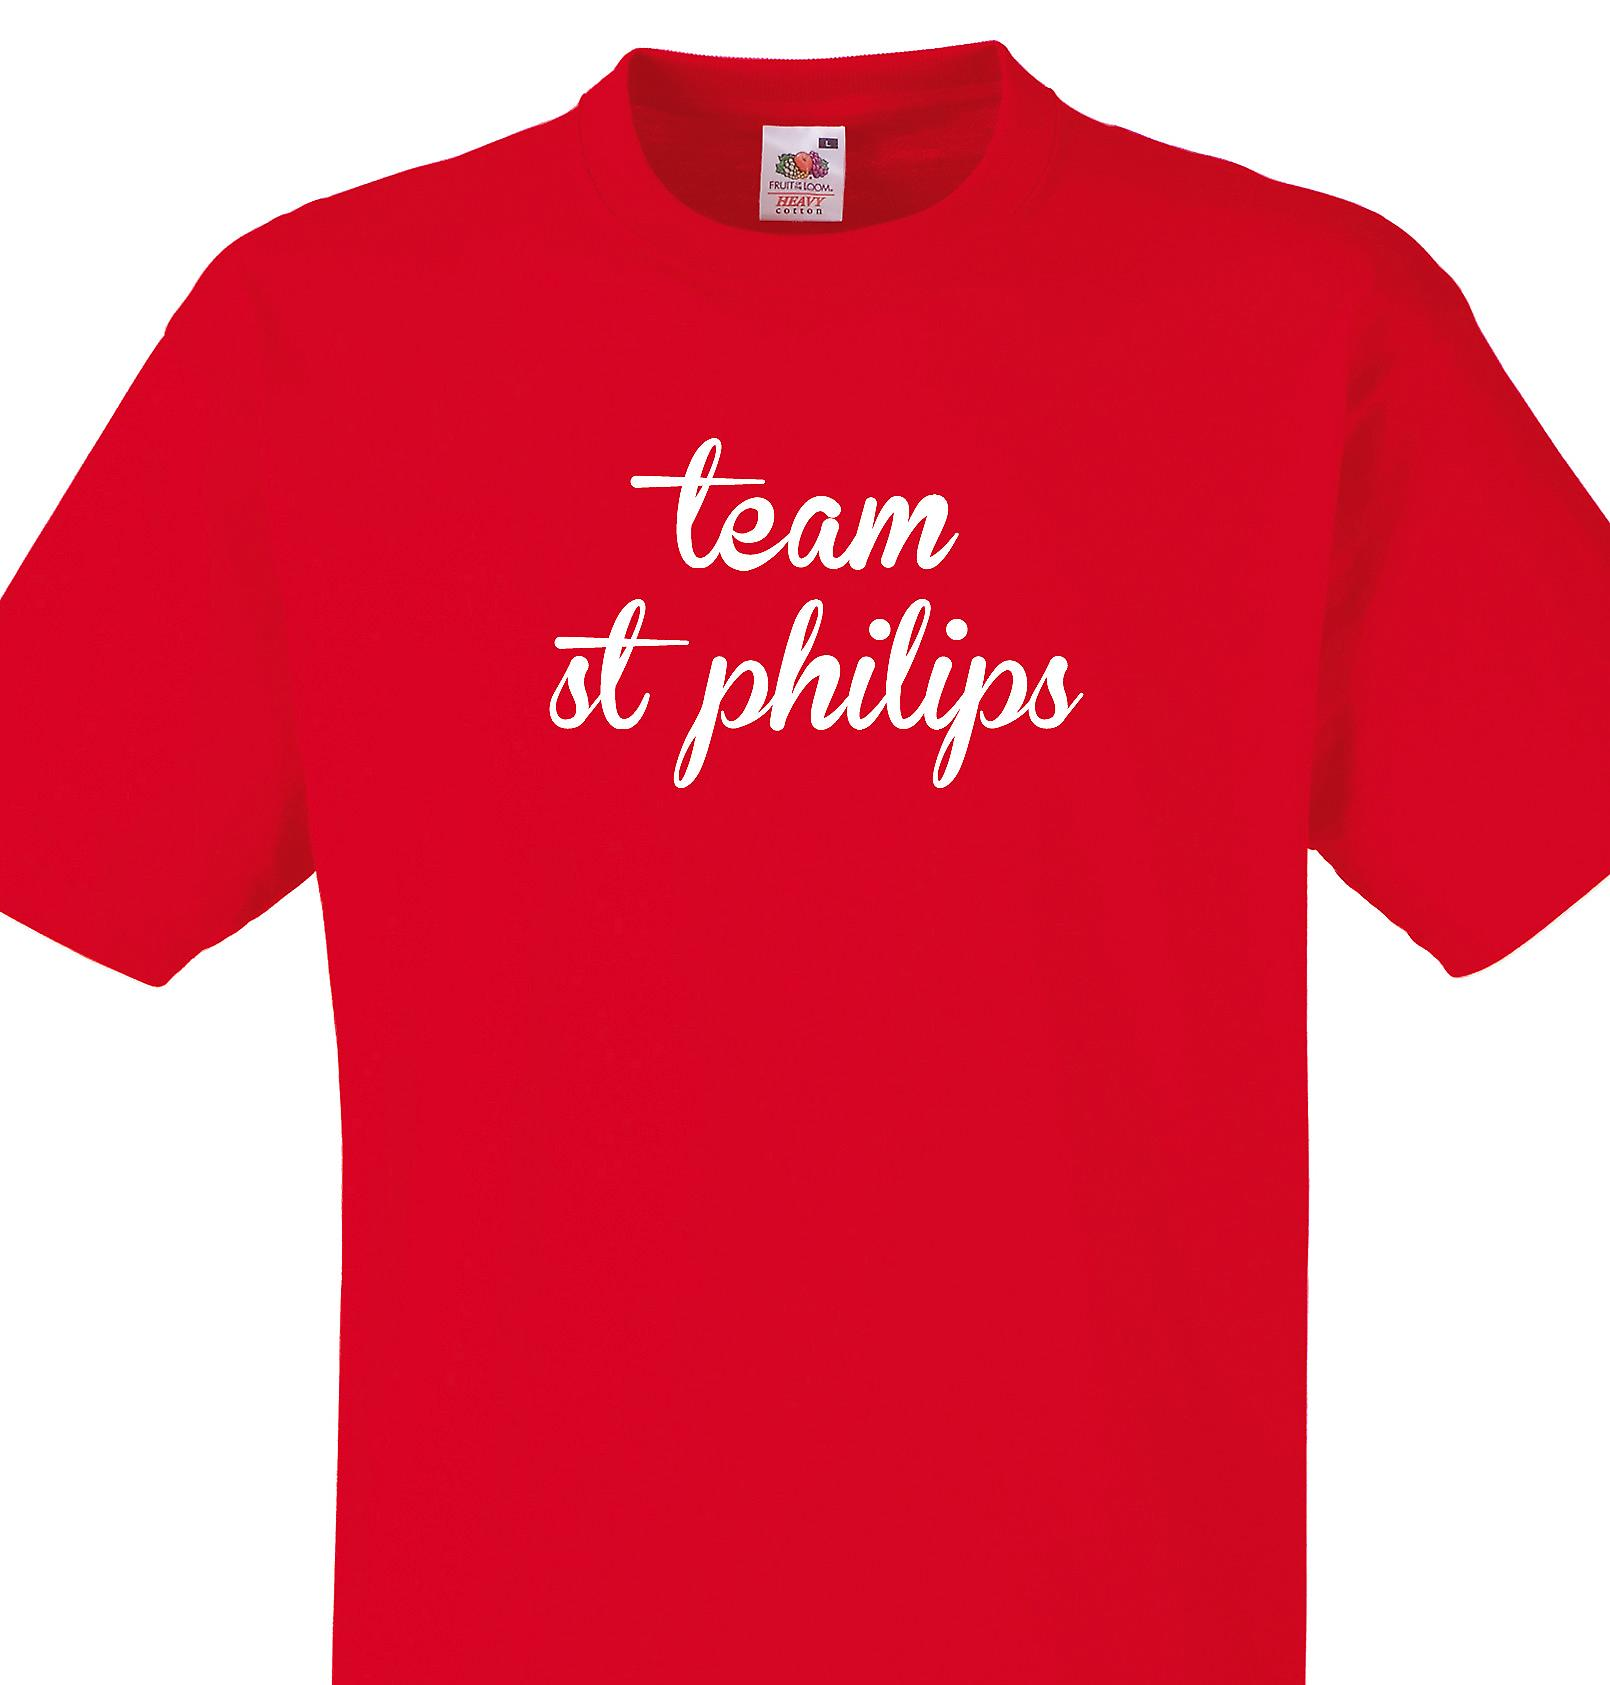 Team St philips Red T shirt